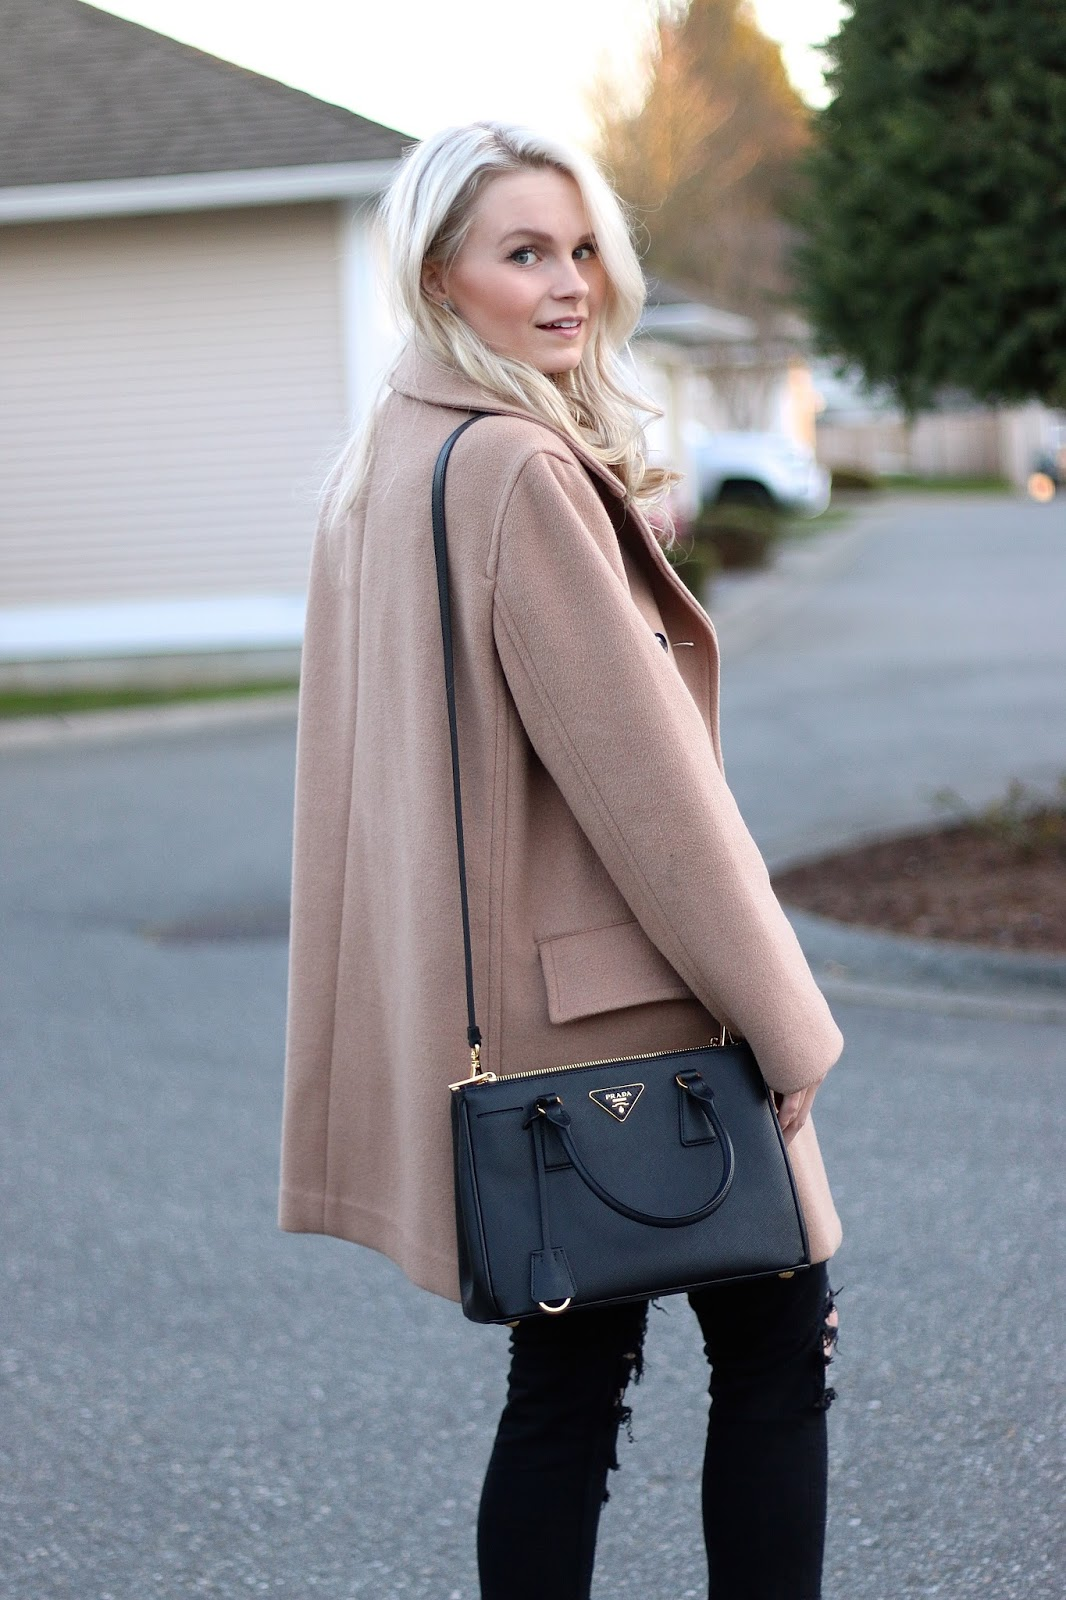 blonde blogger wearing fall style clothing and prada handbag